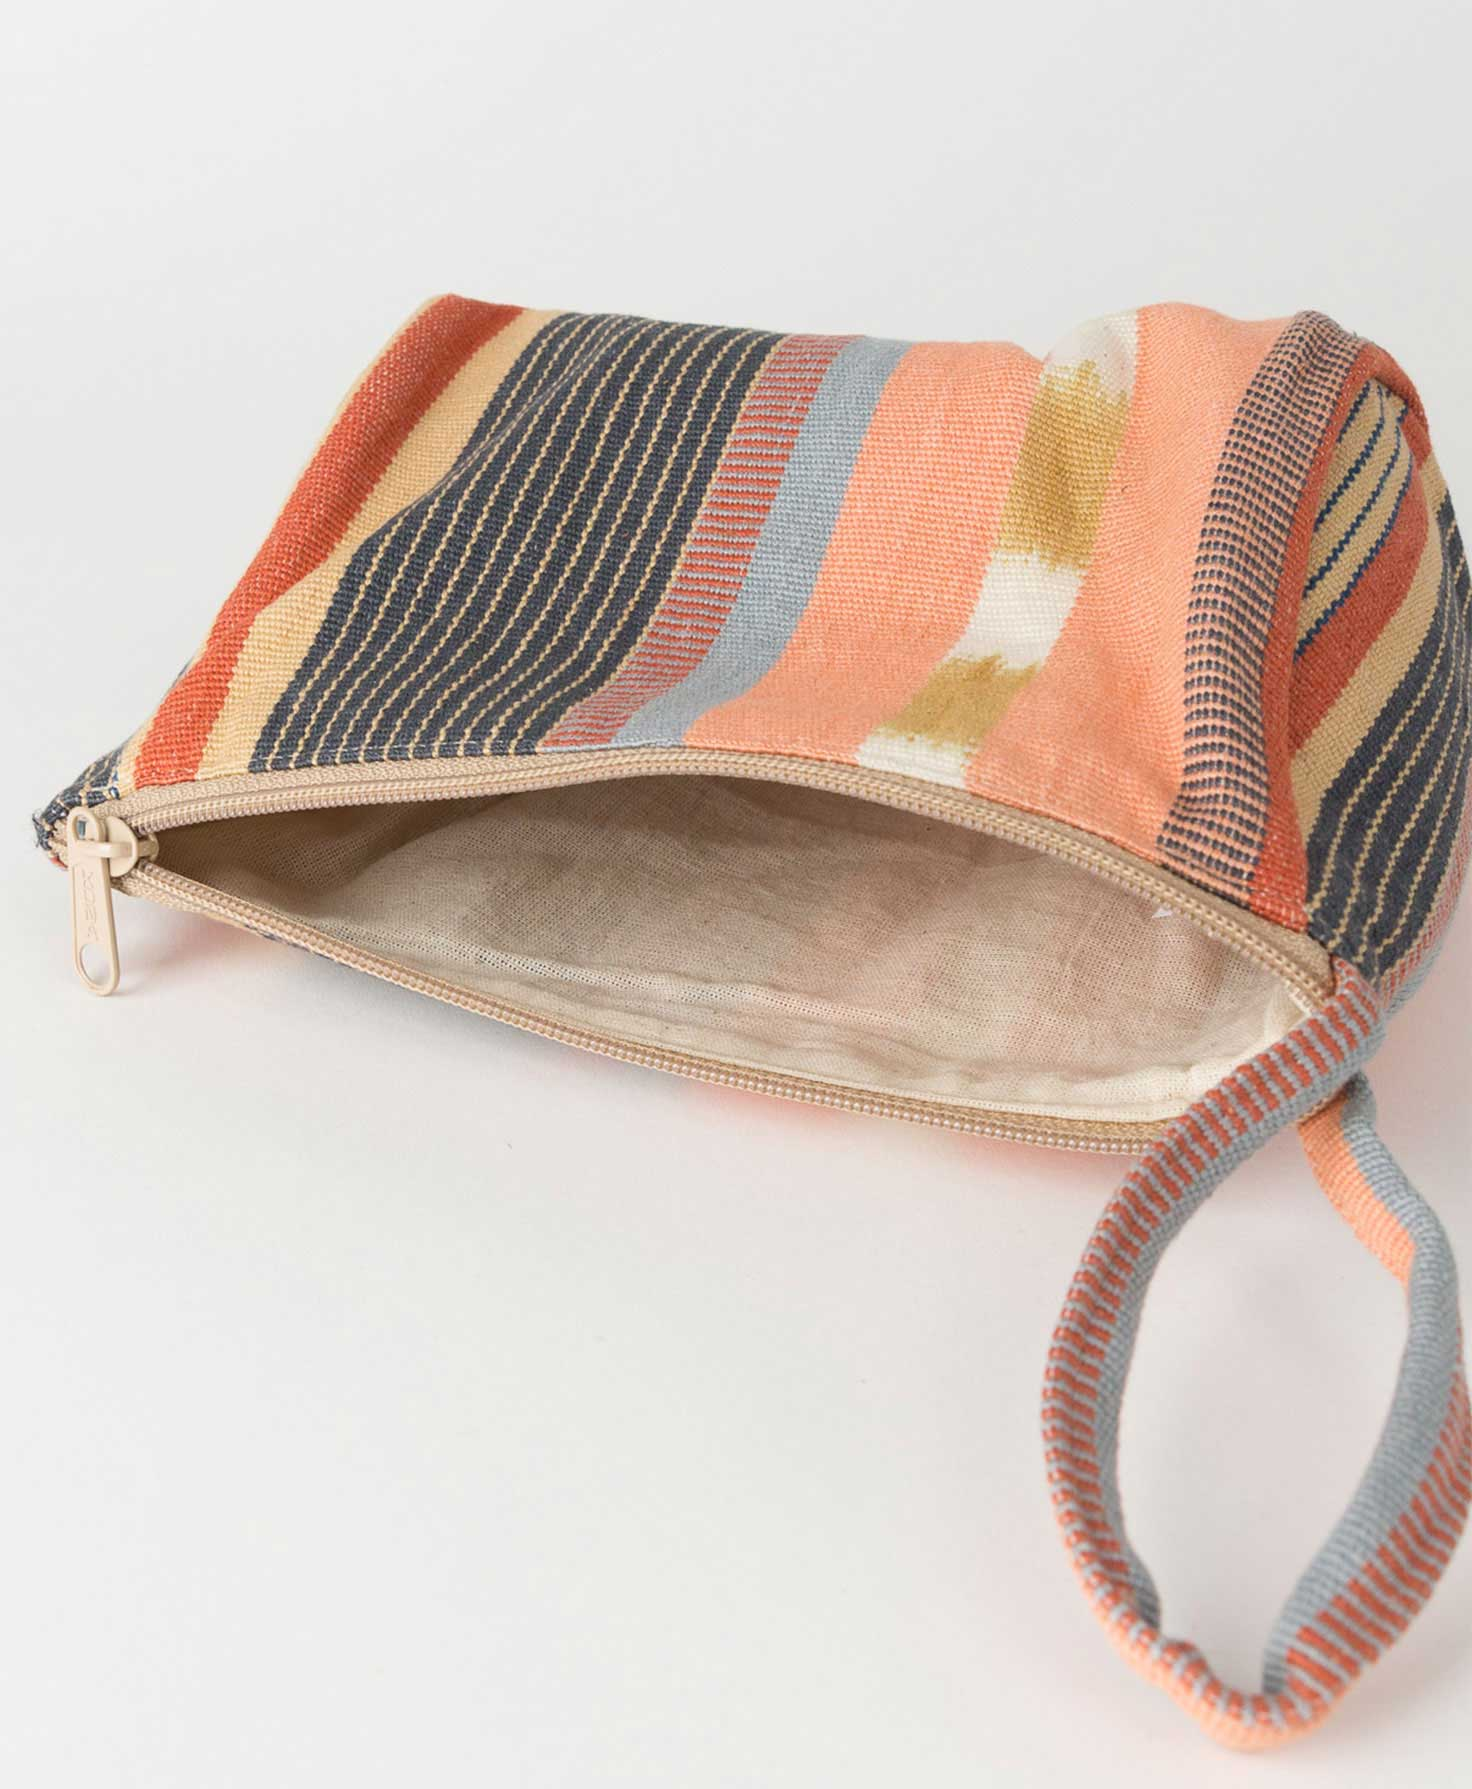 The Drifter Makeup Bag lays on its side with its zipper open. The interior is a solid, sand-colored fabric with a handwoven look.